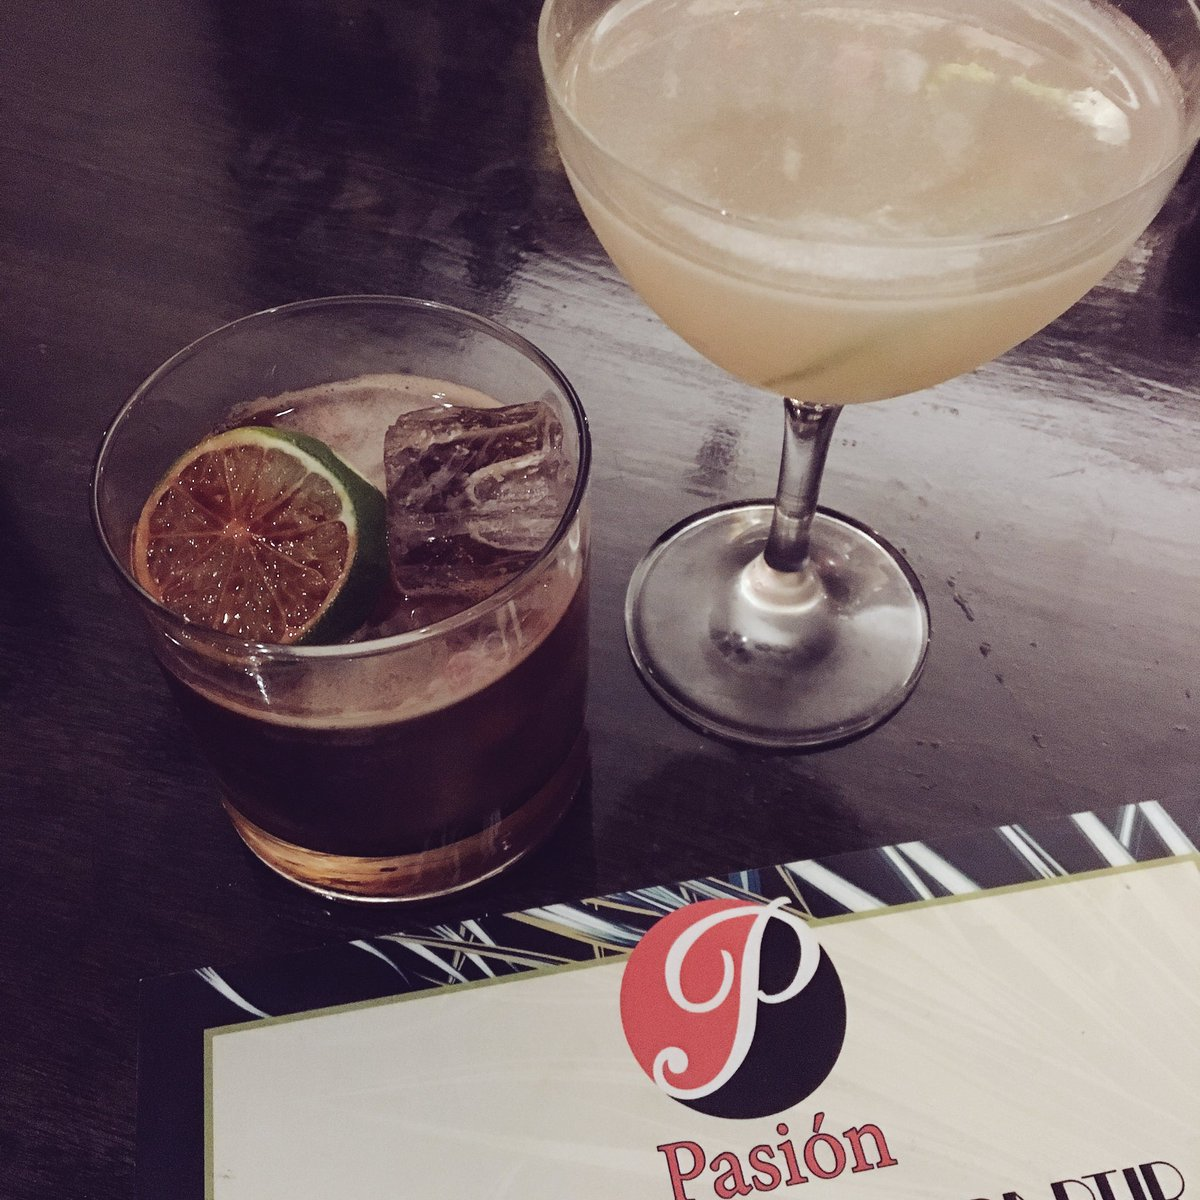 Sipping Corn & Oil, Hemingway #cocktails w/ best #rum in world @donqrum #pasionbuffalo #buffalo https://t.co/fQGn8lBz9e